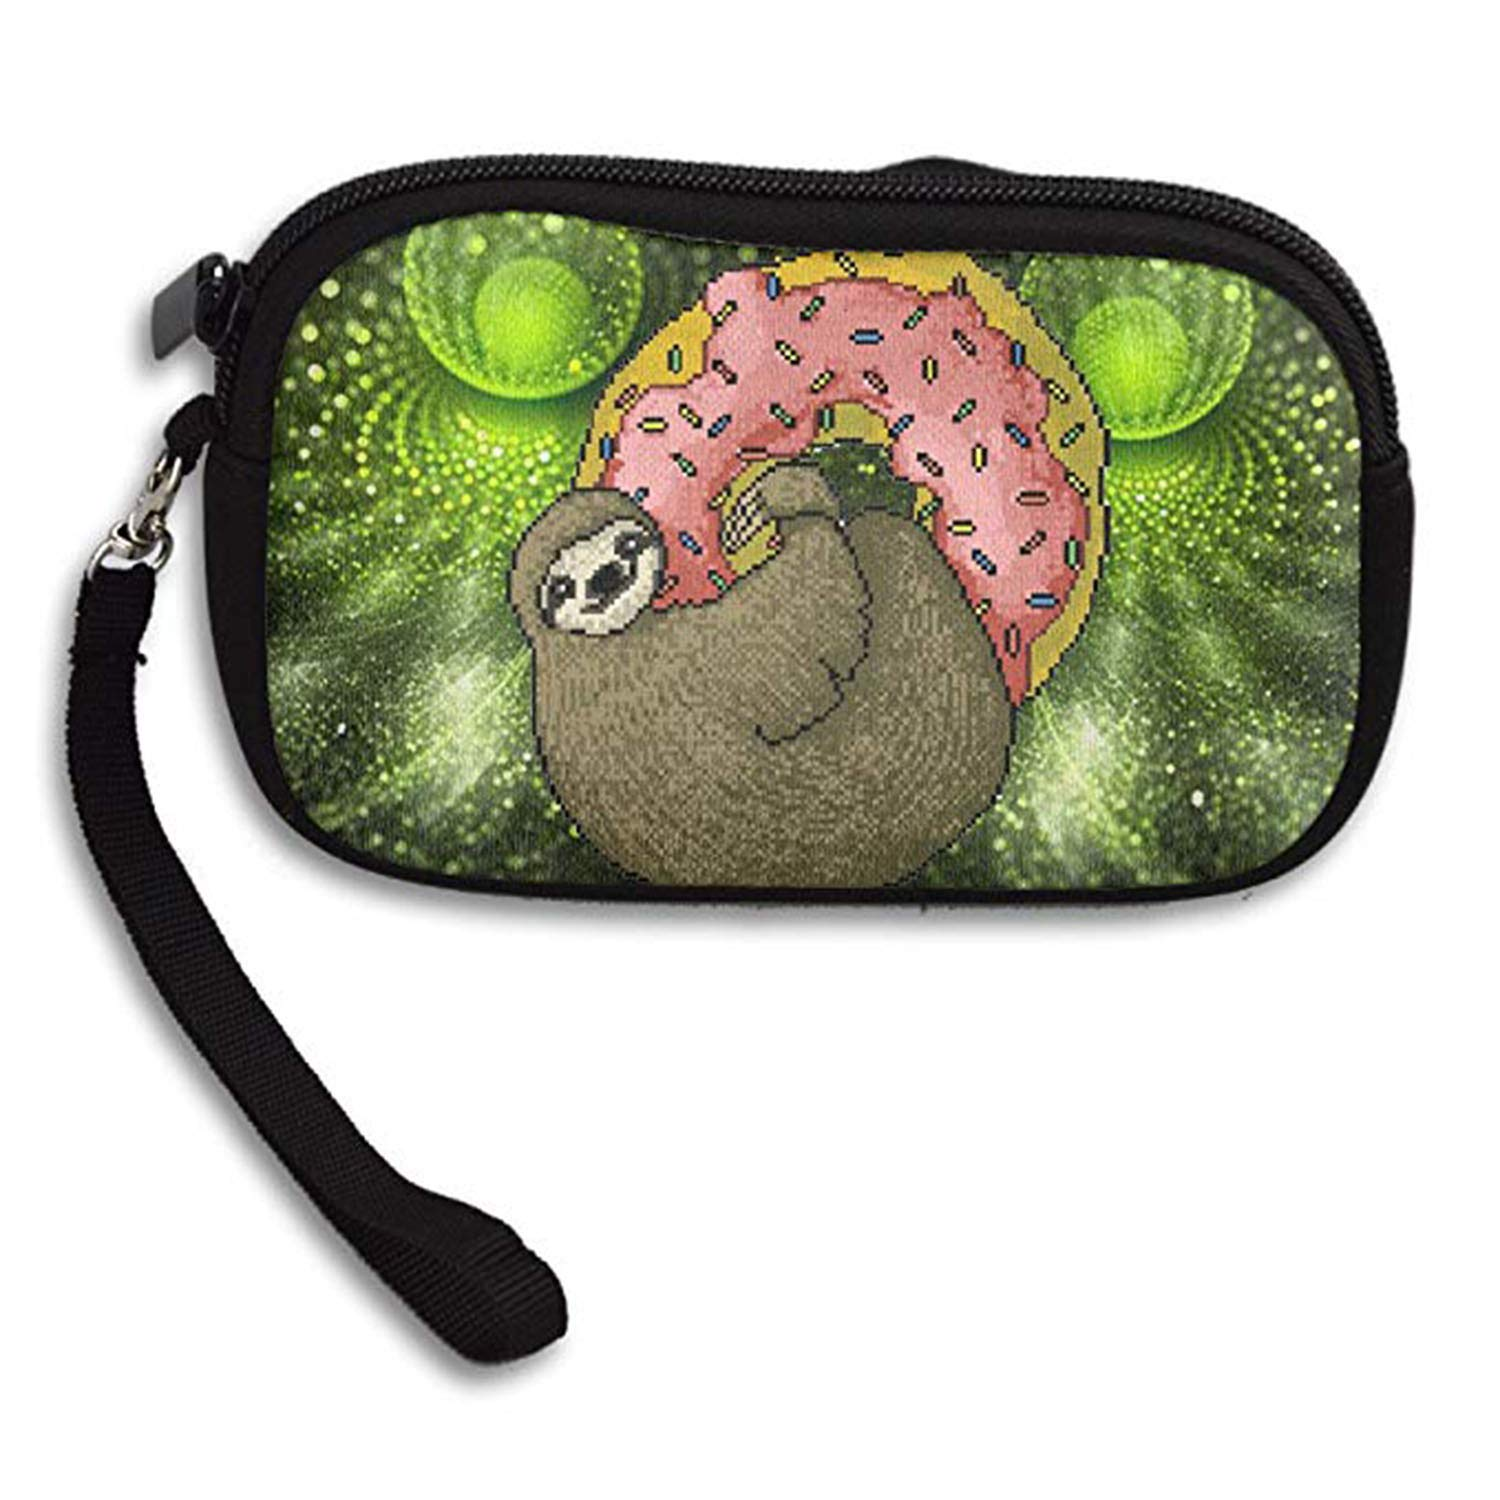 LHQ's Sloth And Donut Pixelated Zipper Change Purse Coin Wallet Card Holder With Key Ring Wristlet Portable Pouch Bag LHQOOO LHQCOIN888-36